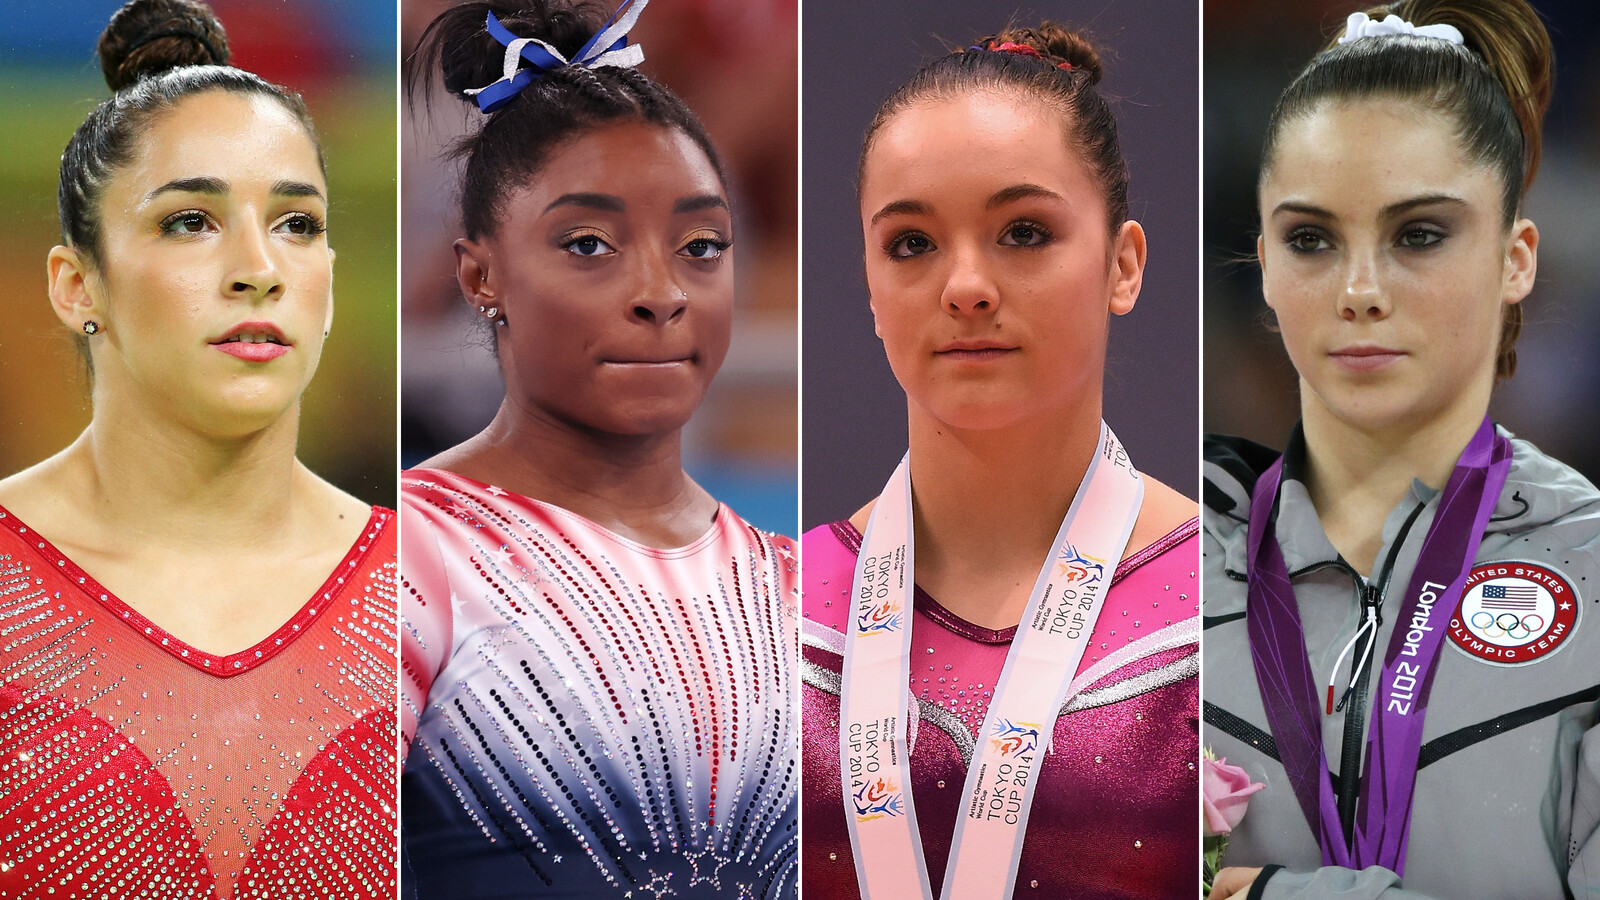 Simone Biles and other elite gymnasts to testify before Congress about FBI's Larry Nassar investigation